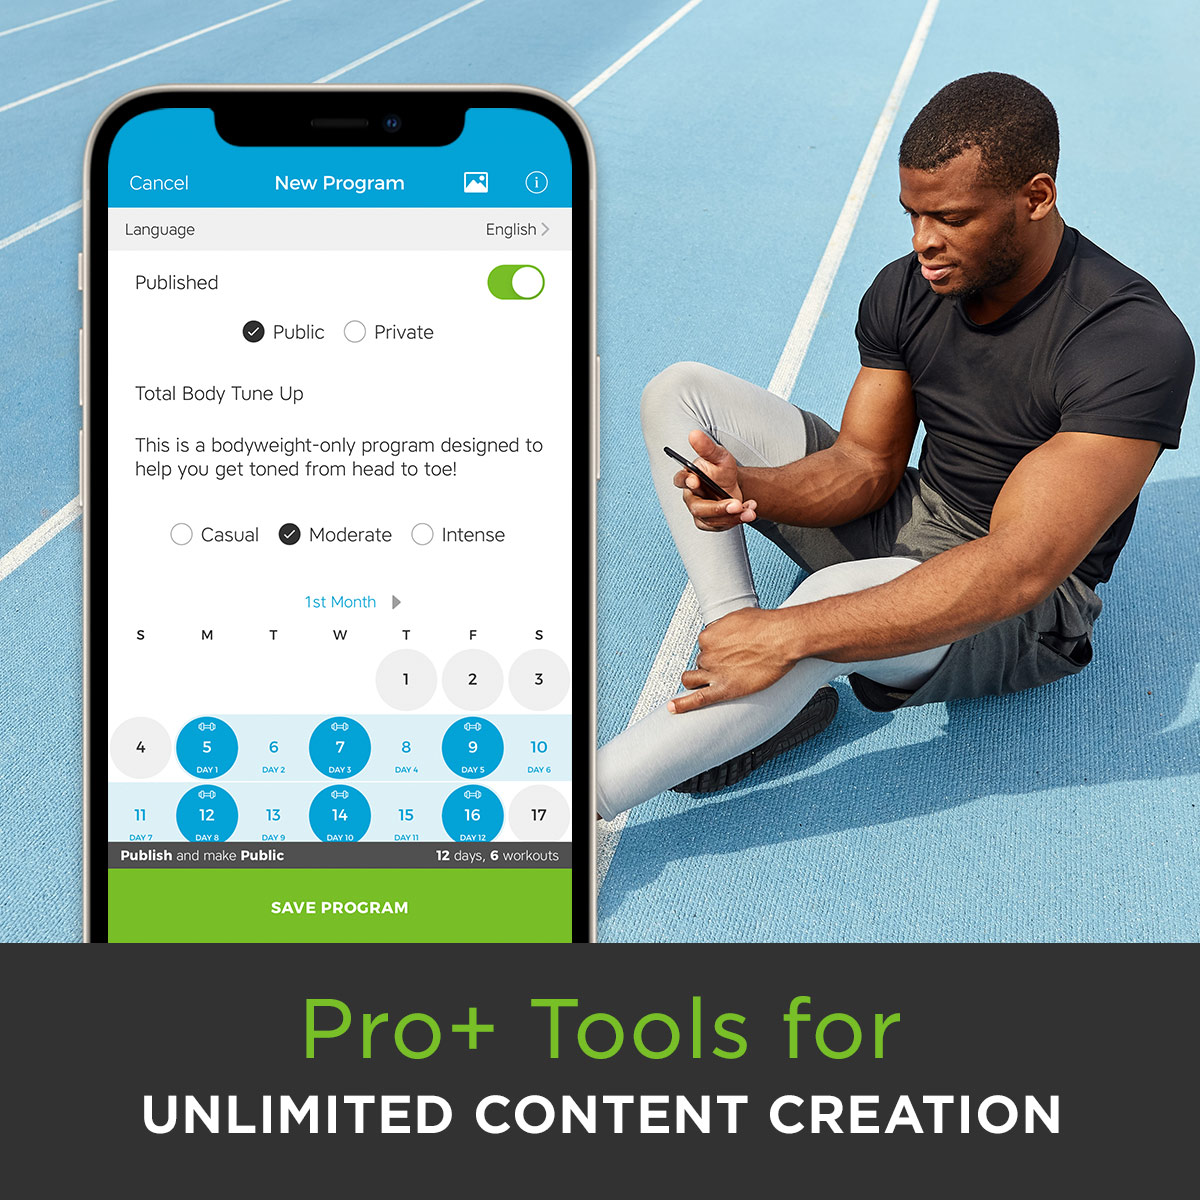 Workout Trainer Pro+ Tools for Unlimited Content Creation